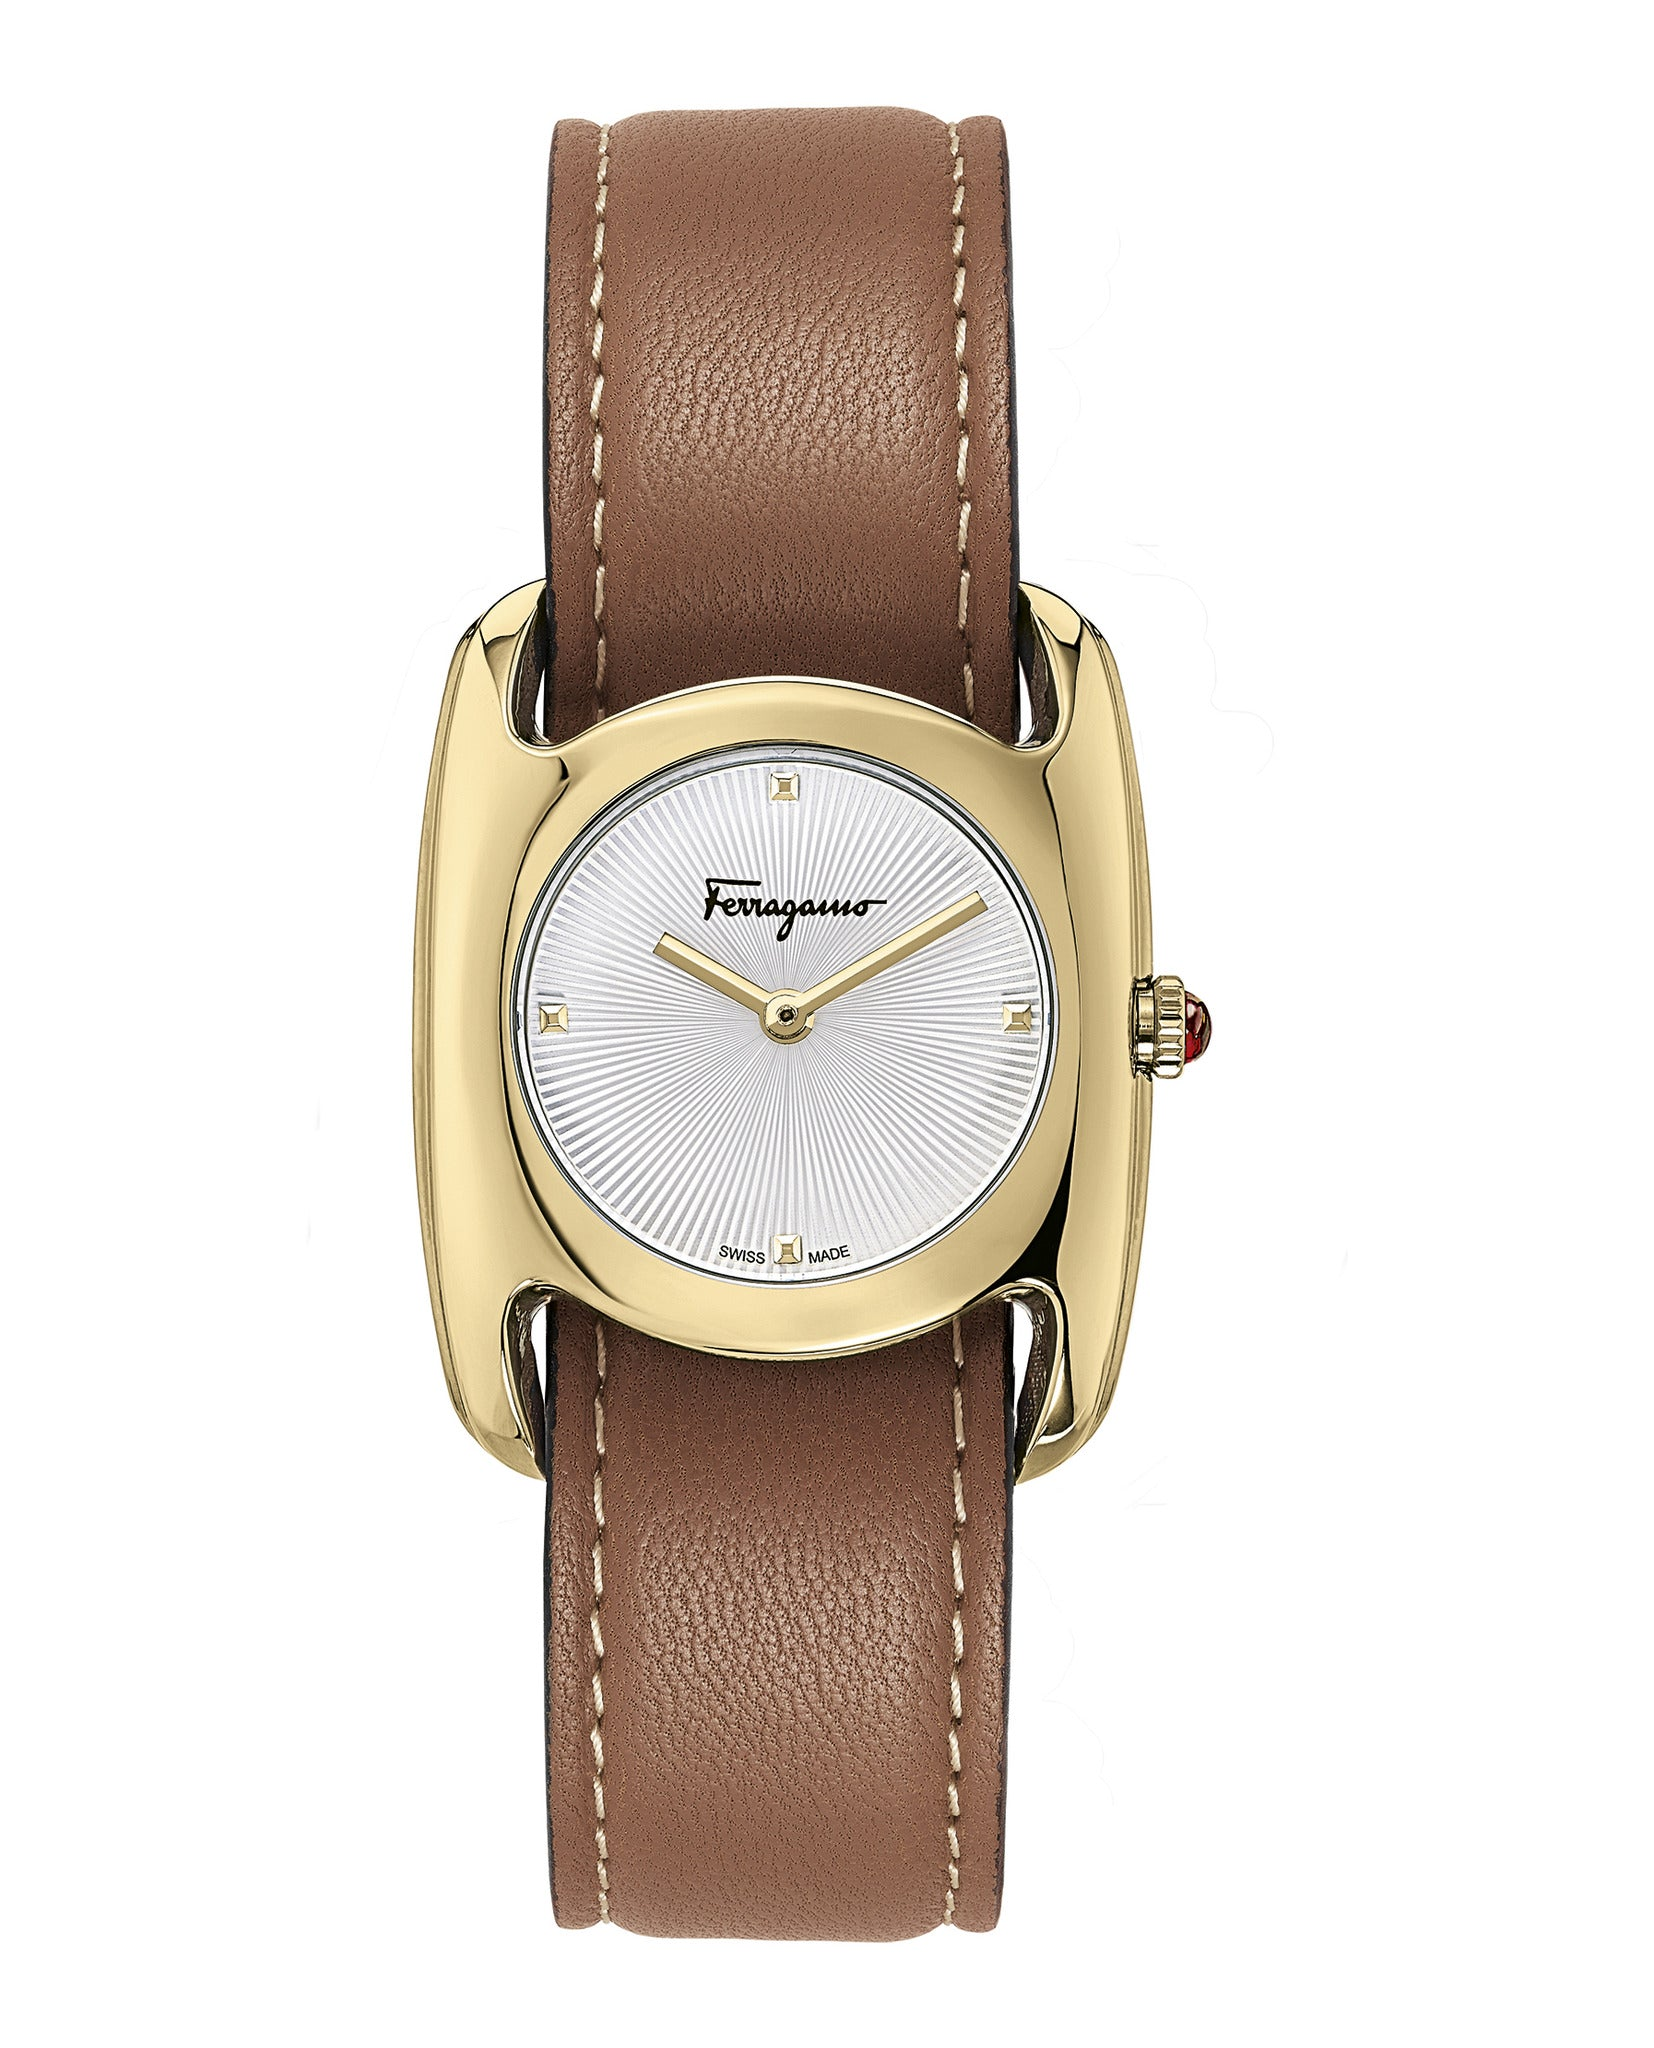 Salvatore Ferragamo Vara Watch